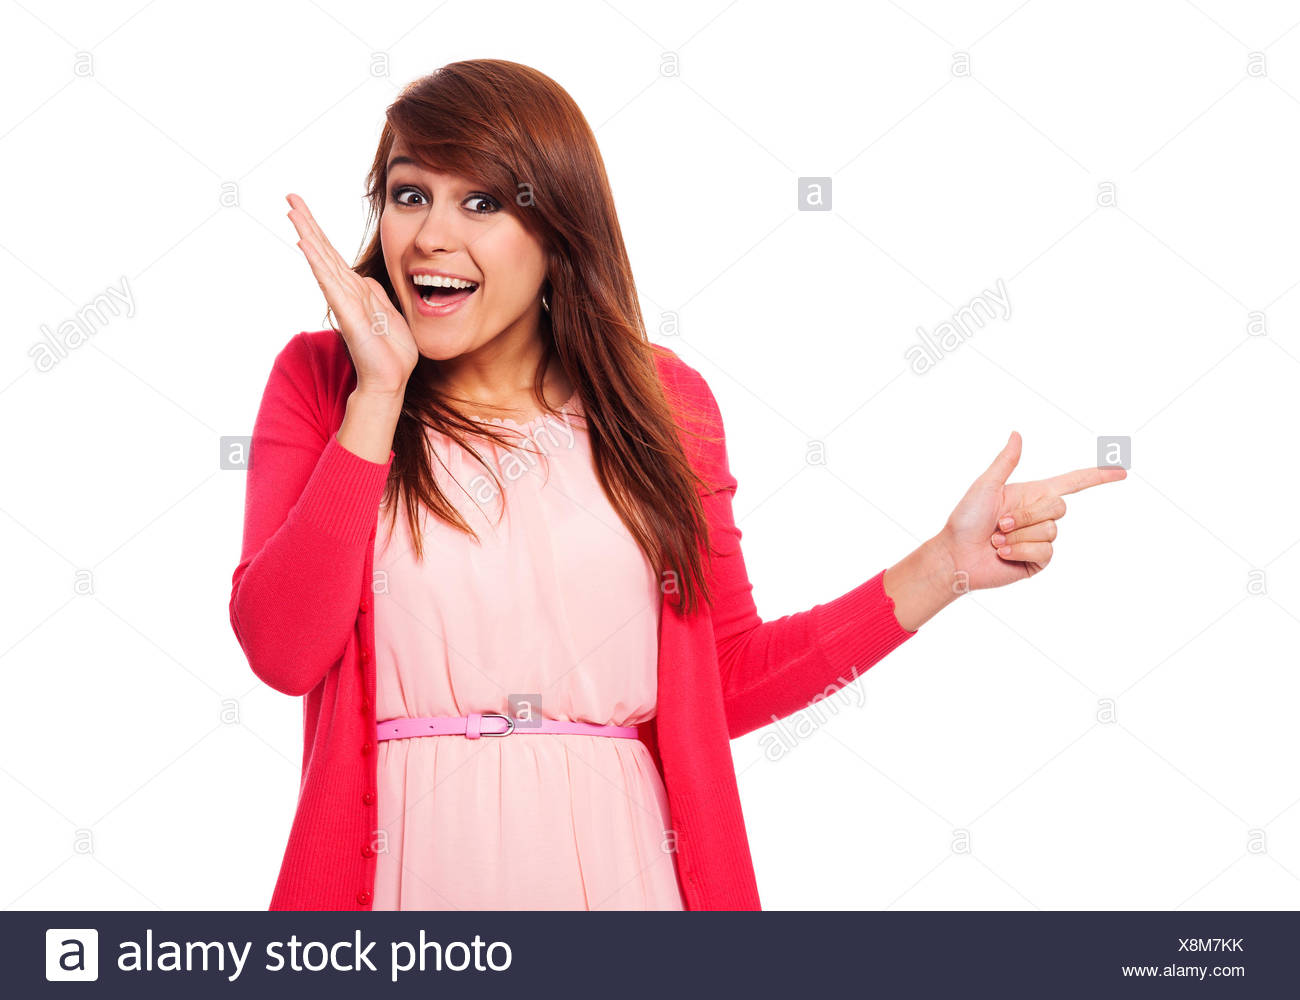 Surprised woman pointing for something, Debica, Poland - Stock Image